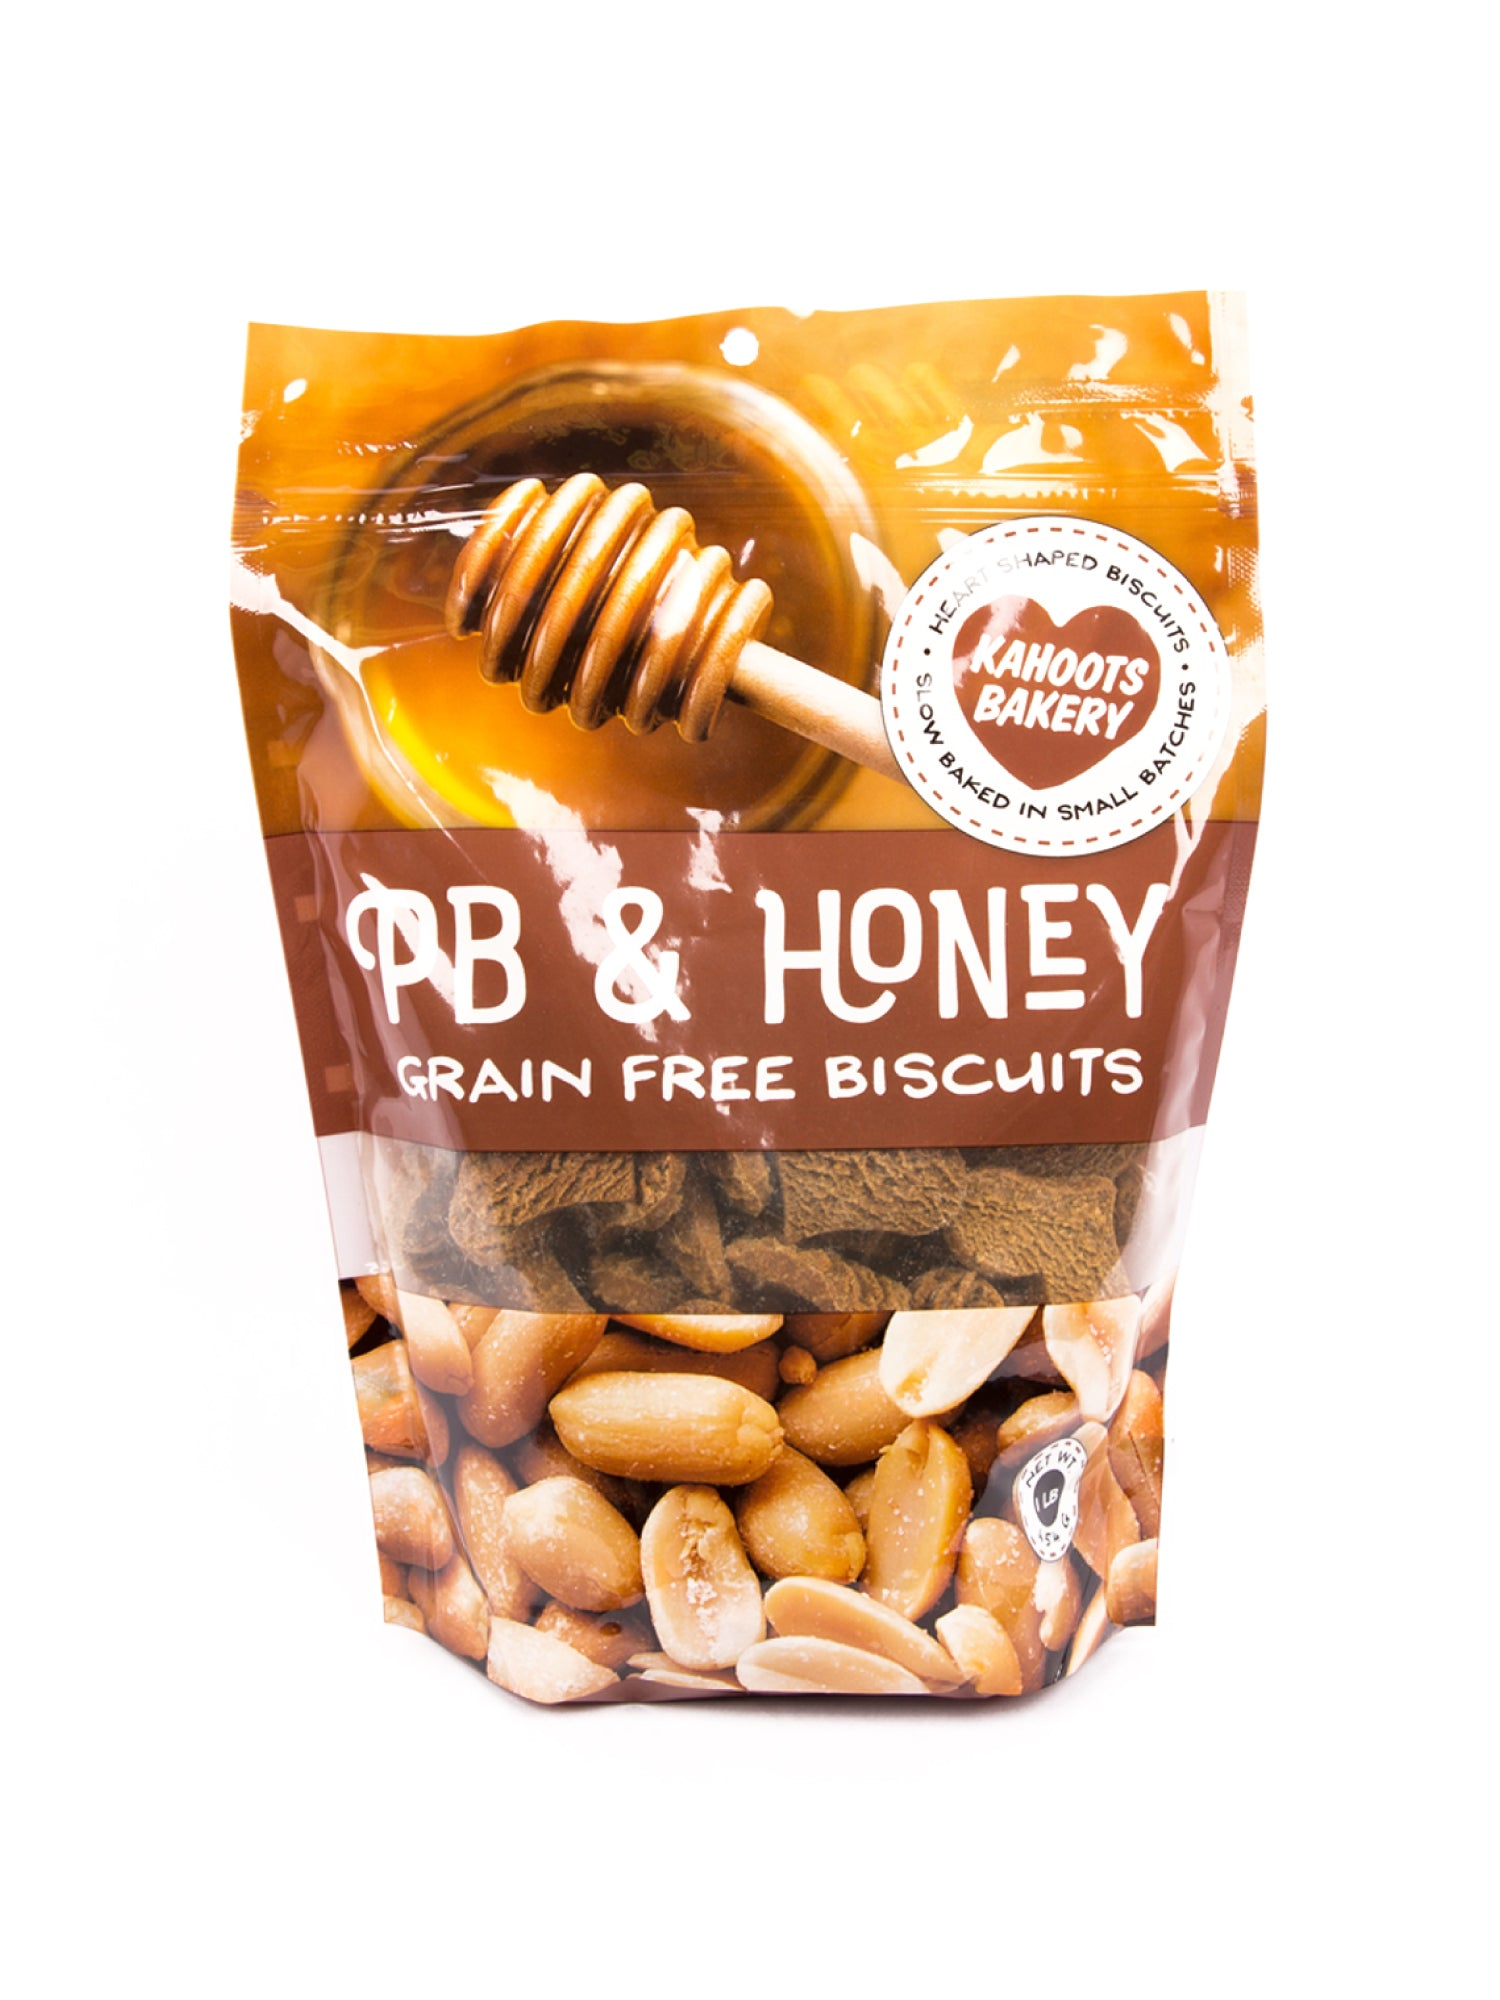 Grain-free Peanut Butter and honey heart-shaped dog biscuits in bag